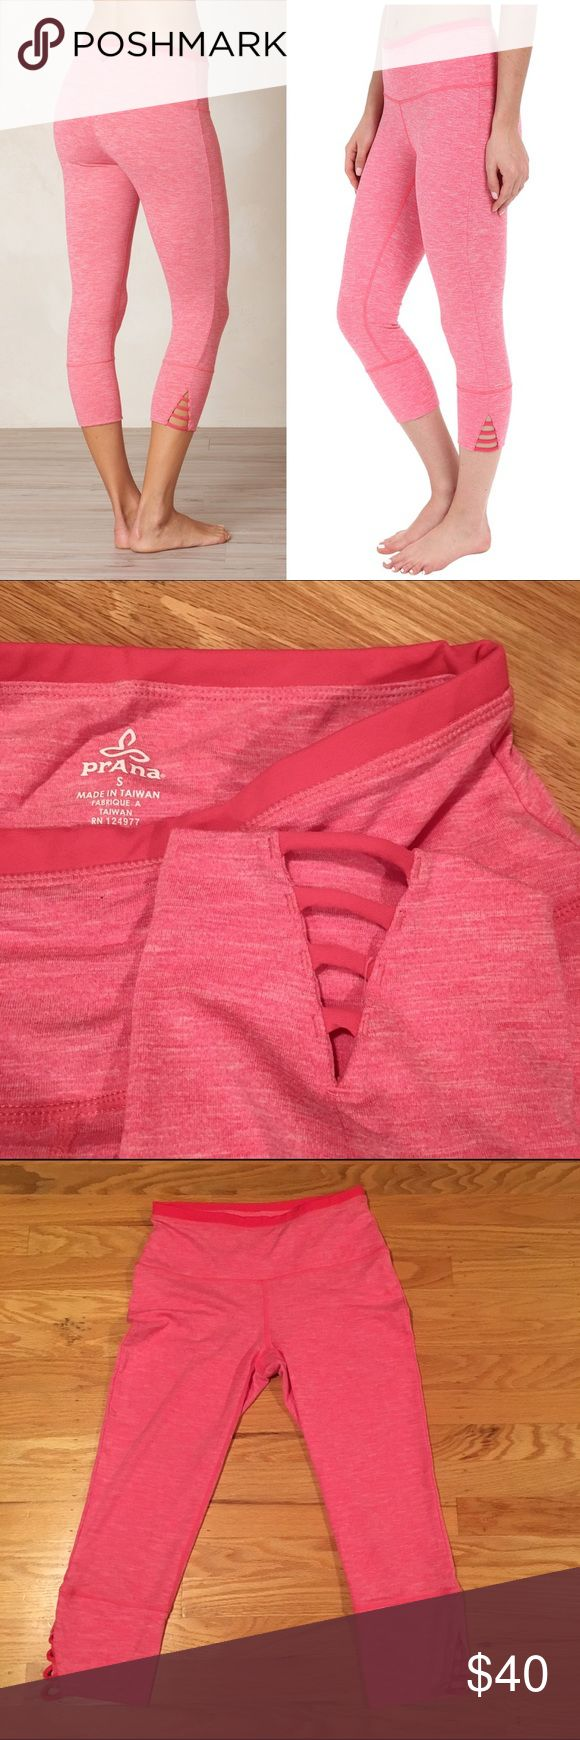 Prana Tori Capri - Azalea Prana Tori Capri in Azalea color, size small. Worn once, excellent condition. Cute cut-outs on the sides! Prana Pants Leggings